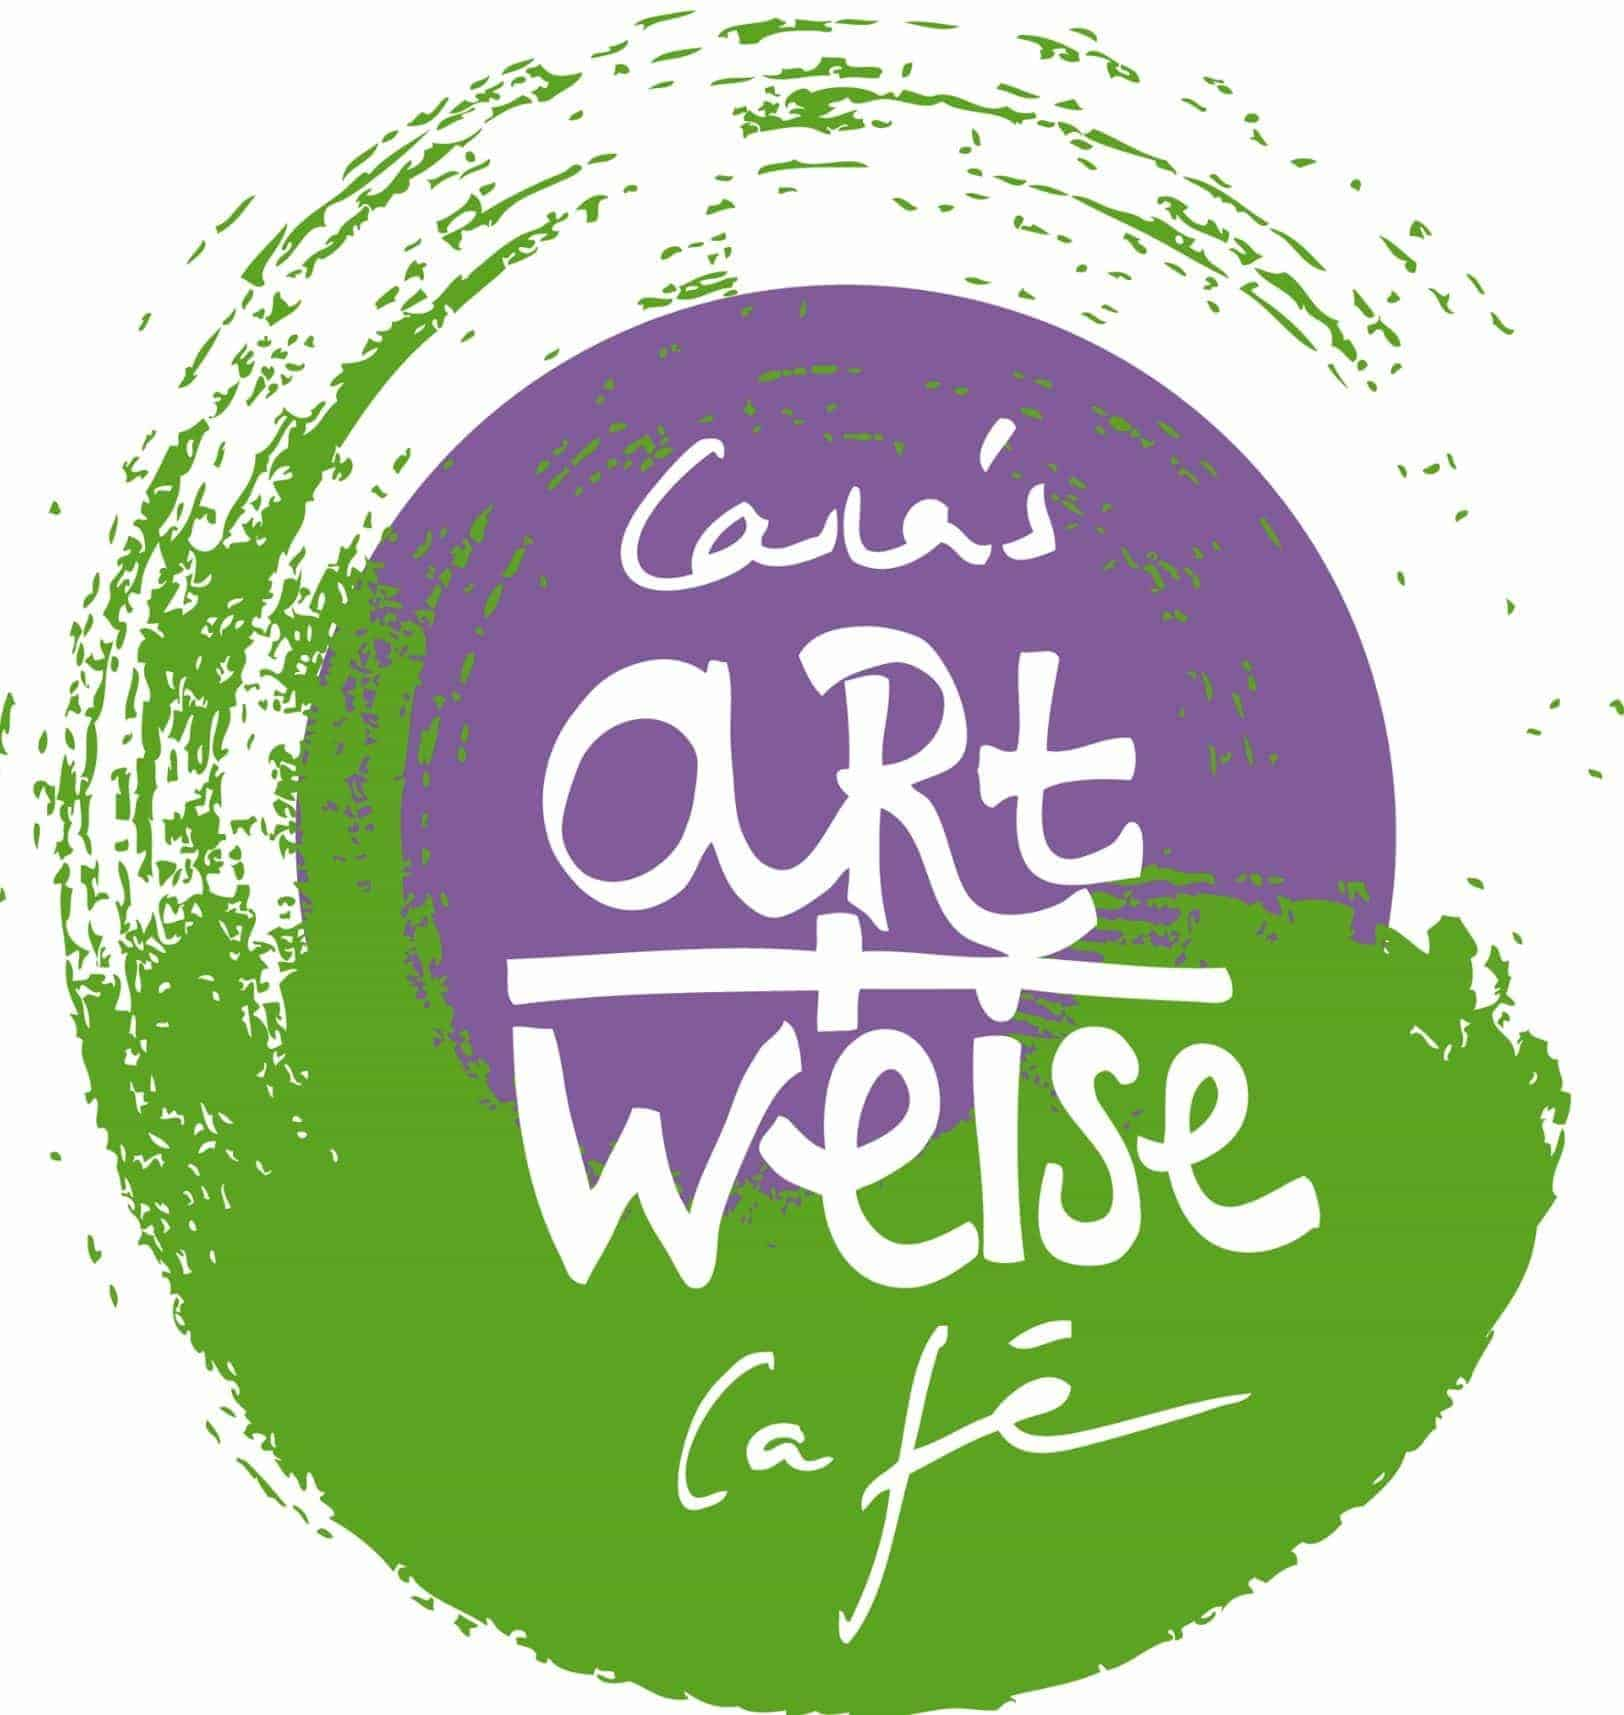 Style Hannover und Cara's Art & Weise Cafe